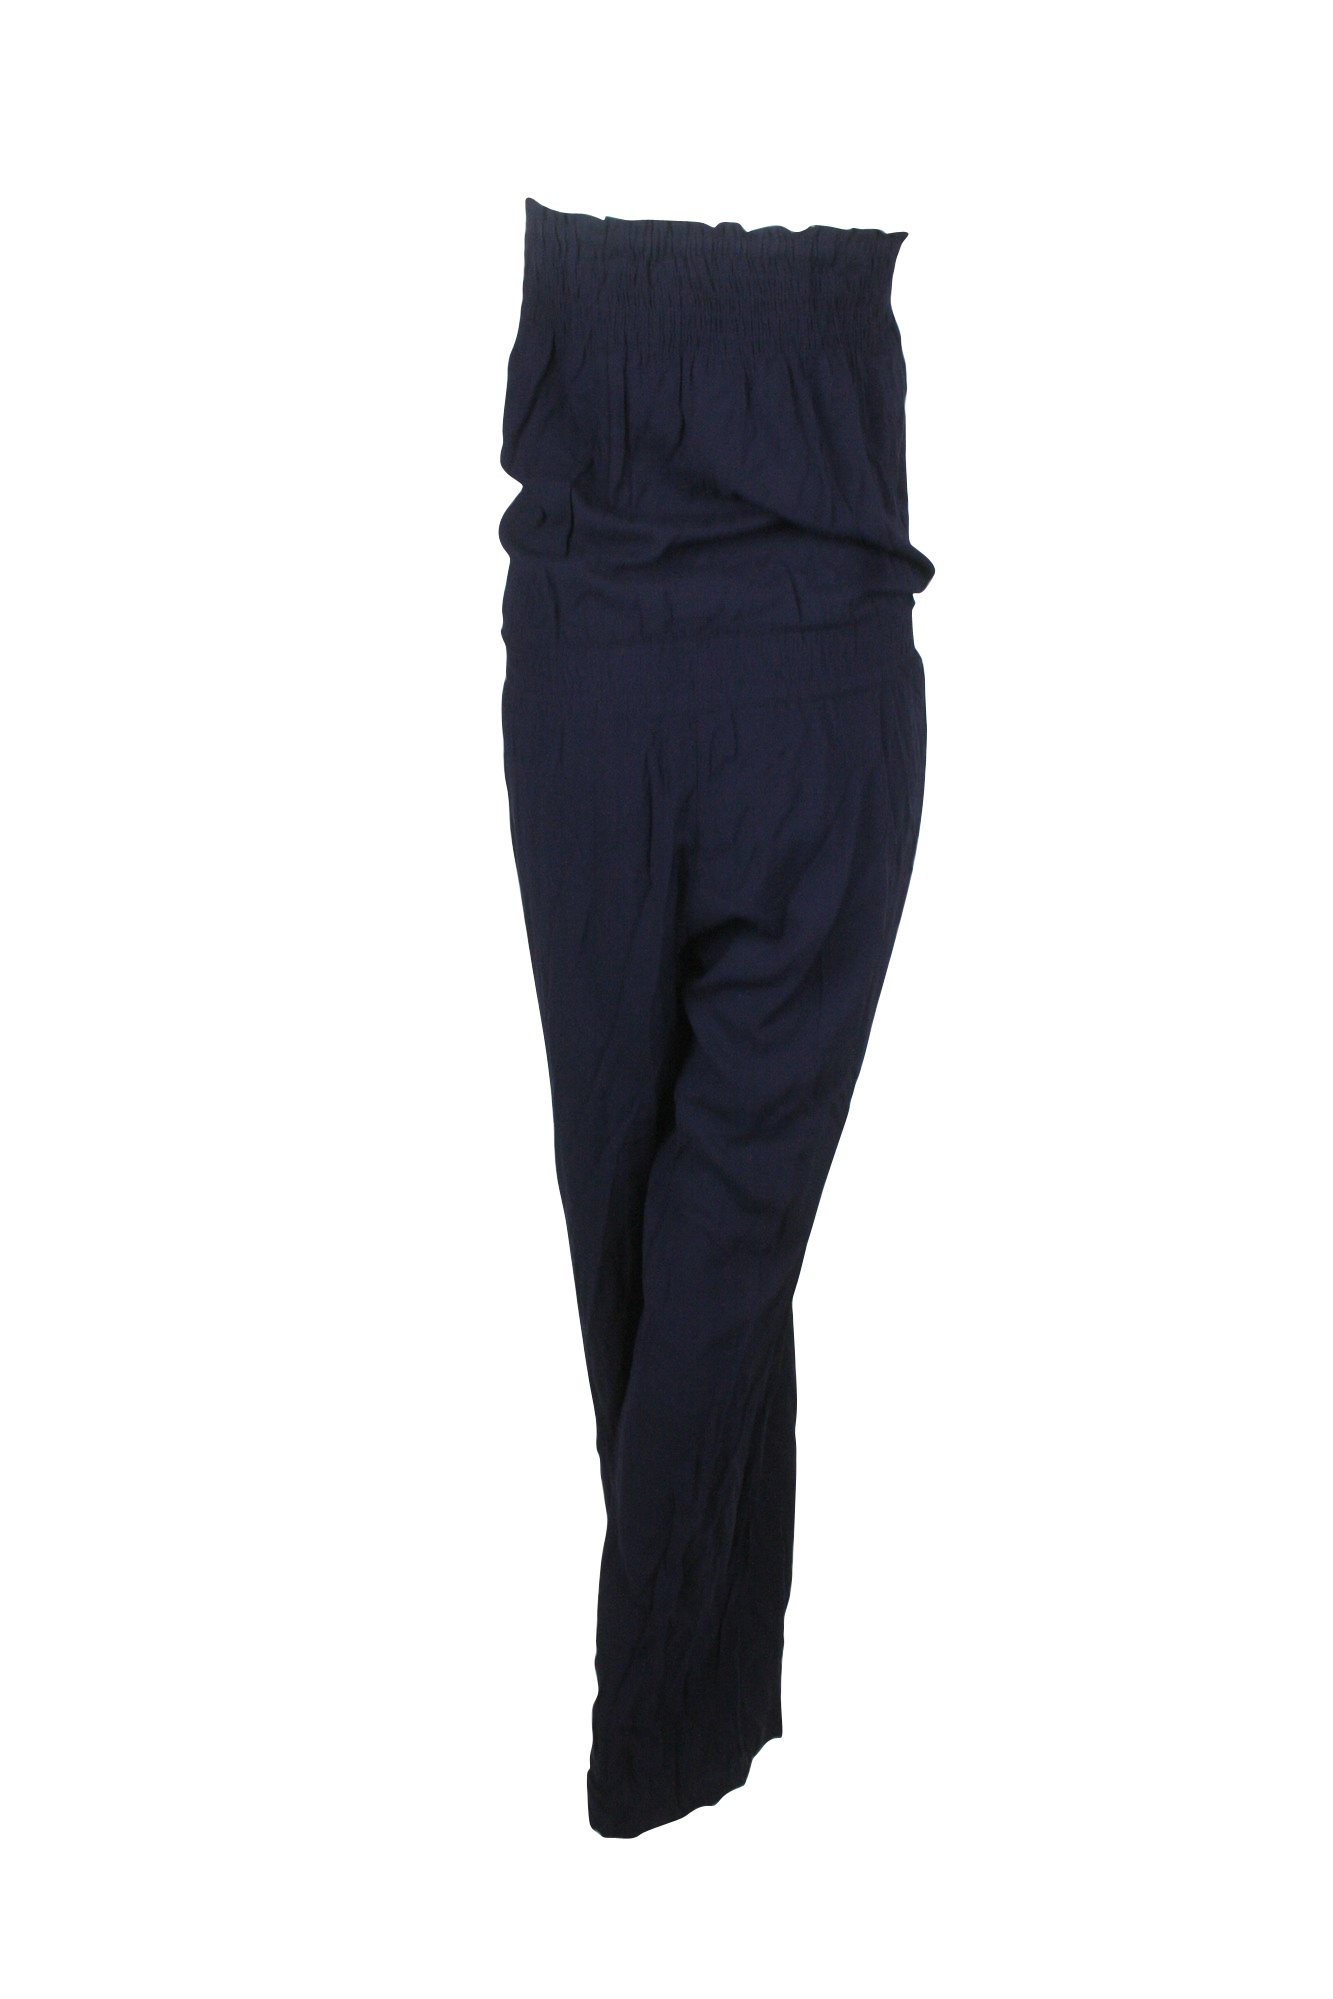 Wonderful Otte New York Signature Jumpsuit In Navy In Blue Navy  Lyst